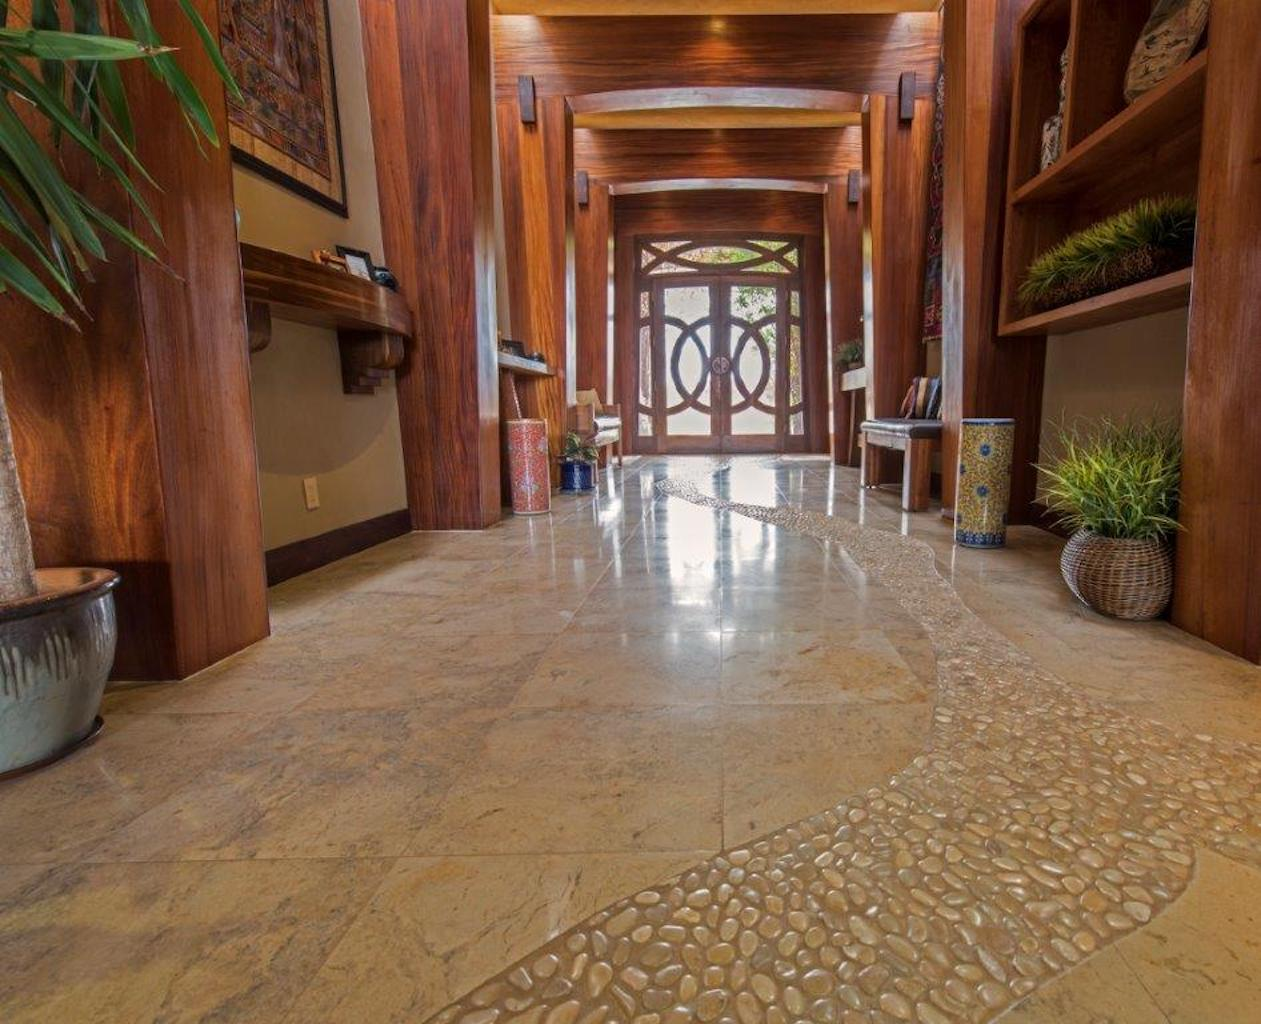 A mixture of travertine and pebbles create a dramatic entrance